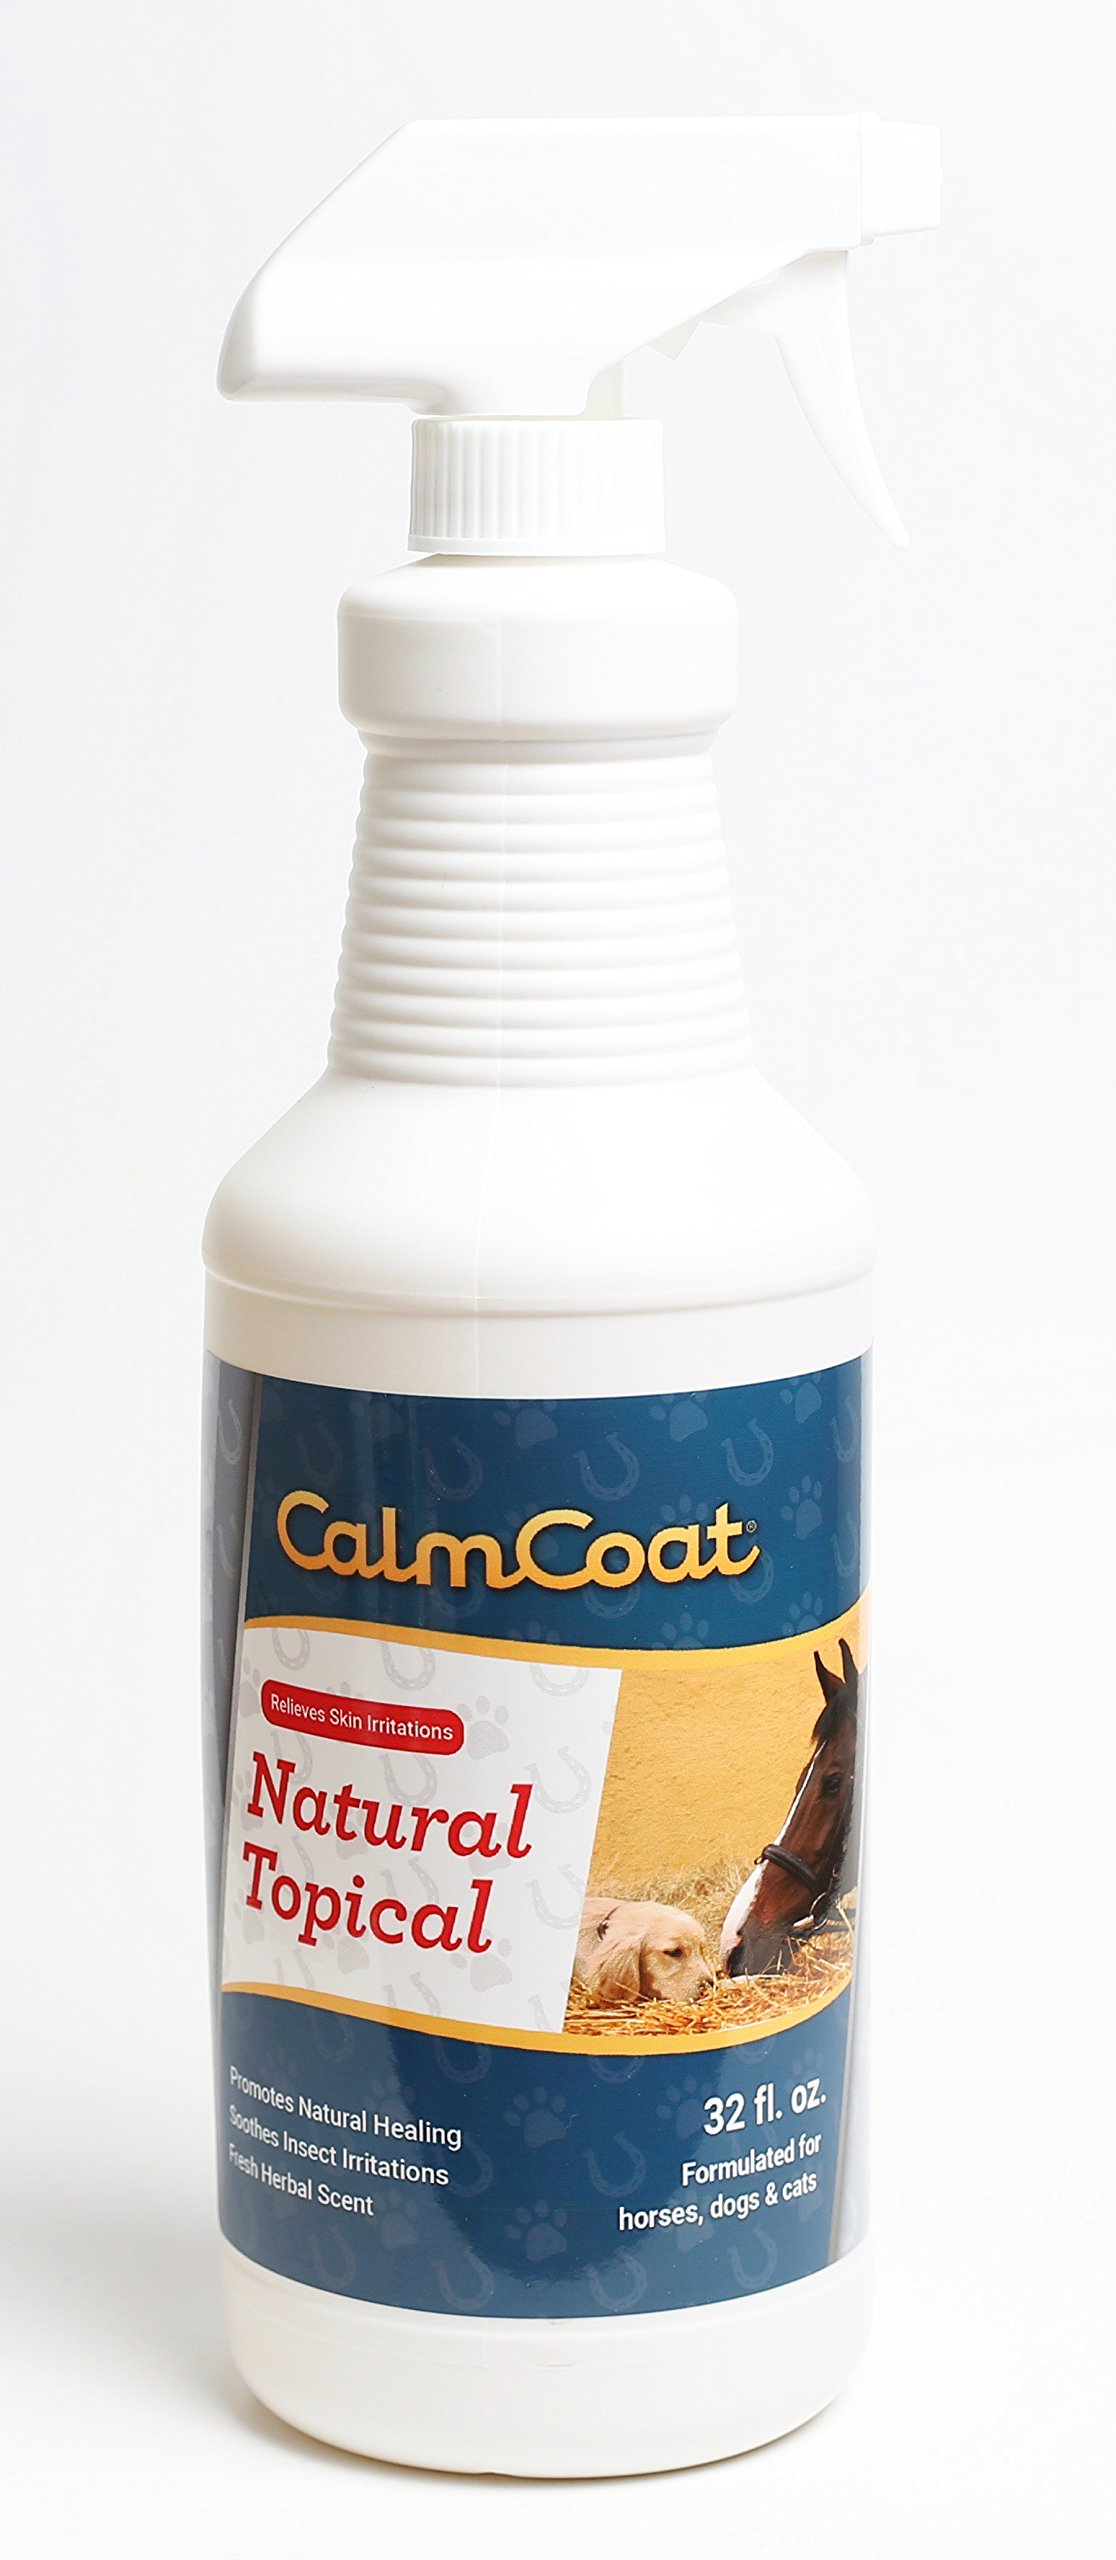 Calm Coat Natural Topical for Horses Dogs & Cats - Natural Oils to Promote Healing & Skin Relief for Irritations - for Cuts, Itchy Hot Spots, Bug Bites - Herbal Scent 32 oz by Calm Coat